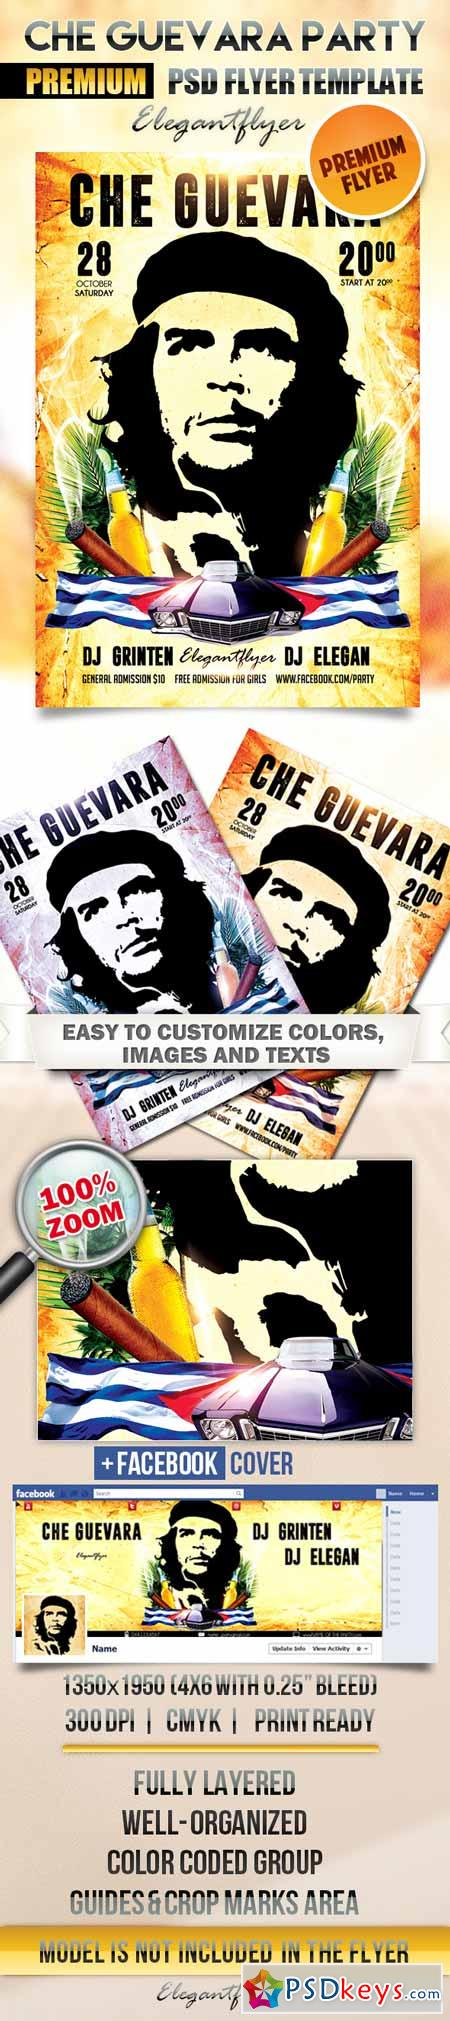 Che Guevara Party Flyer Psd Template Facebook Cover Free